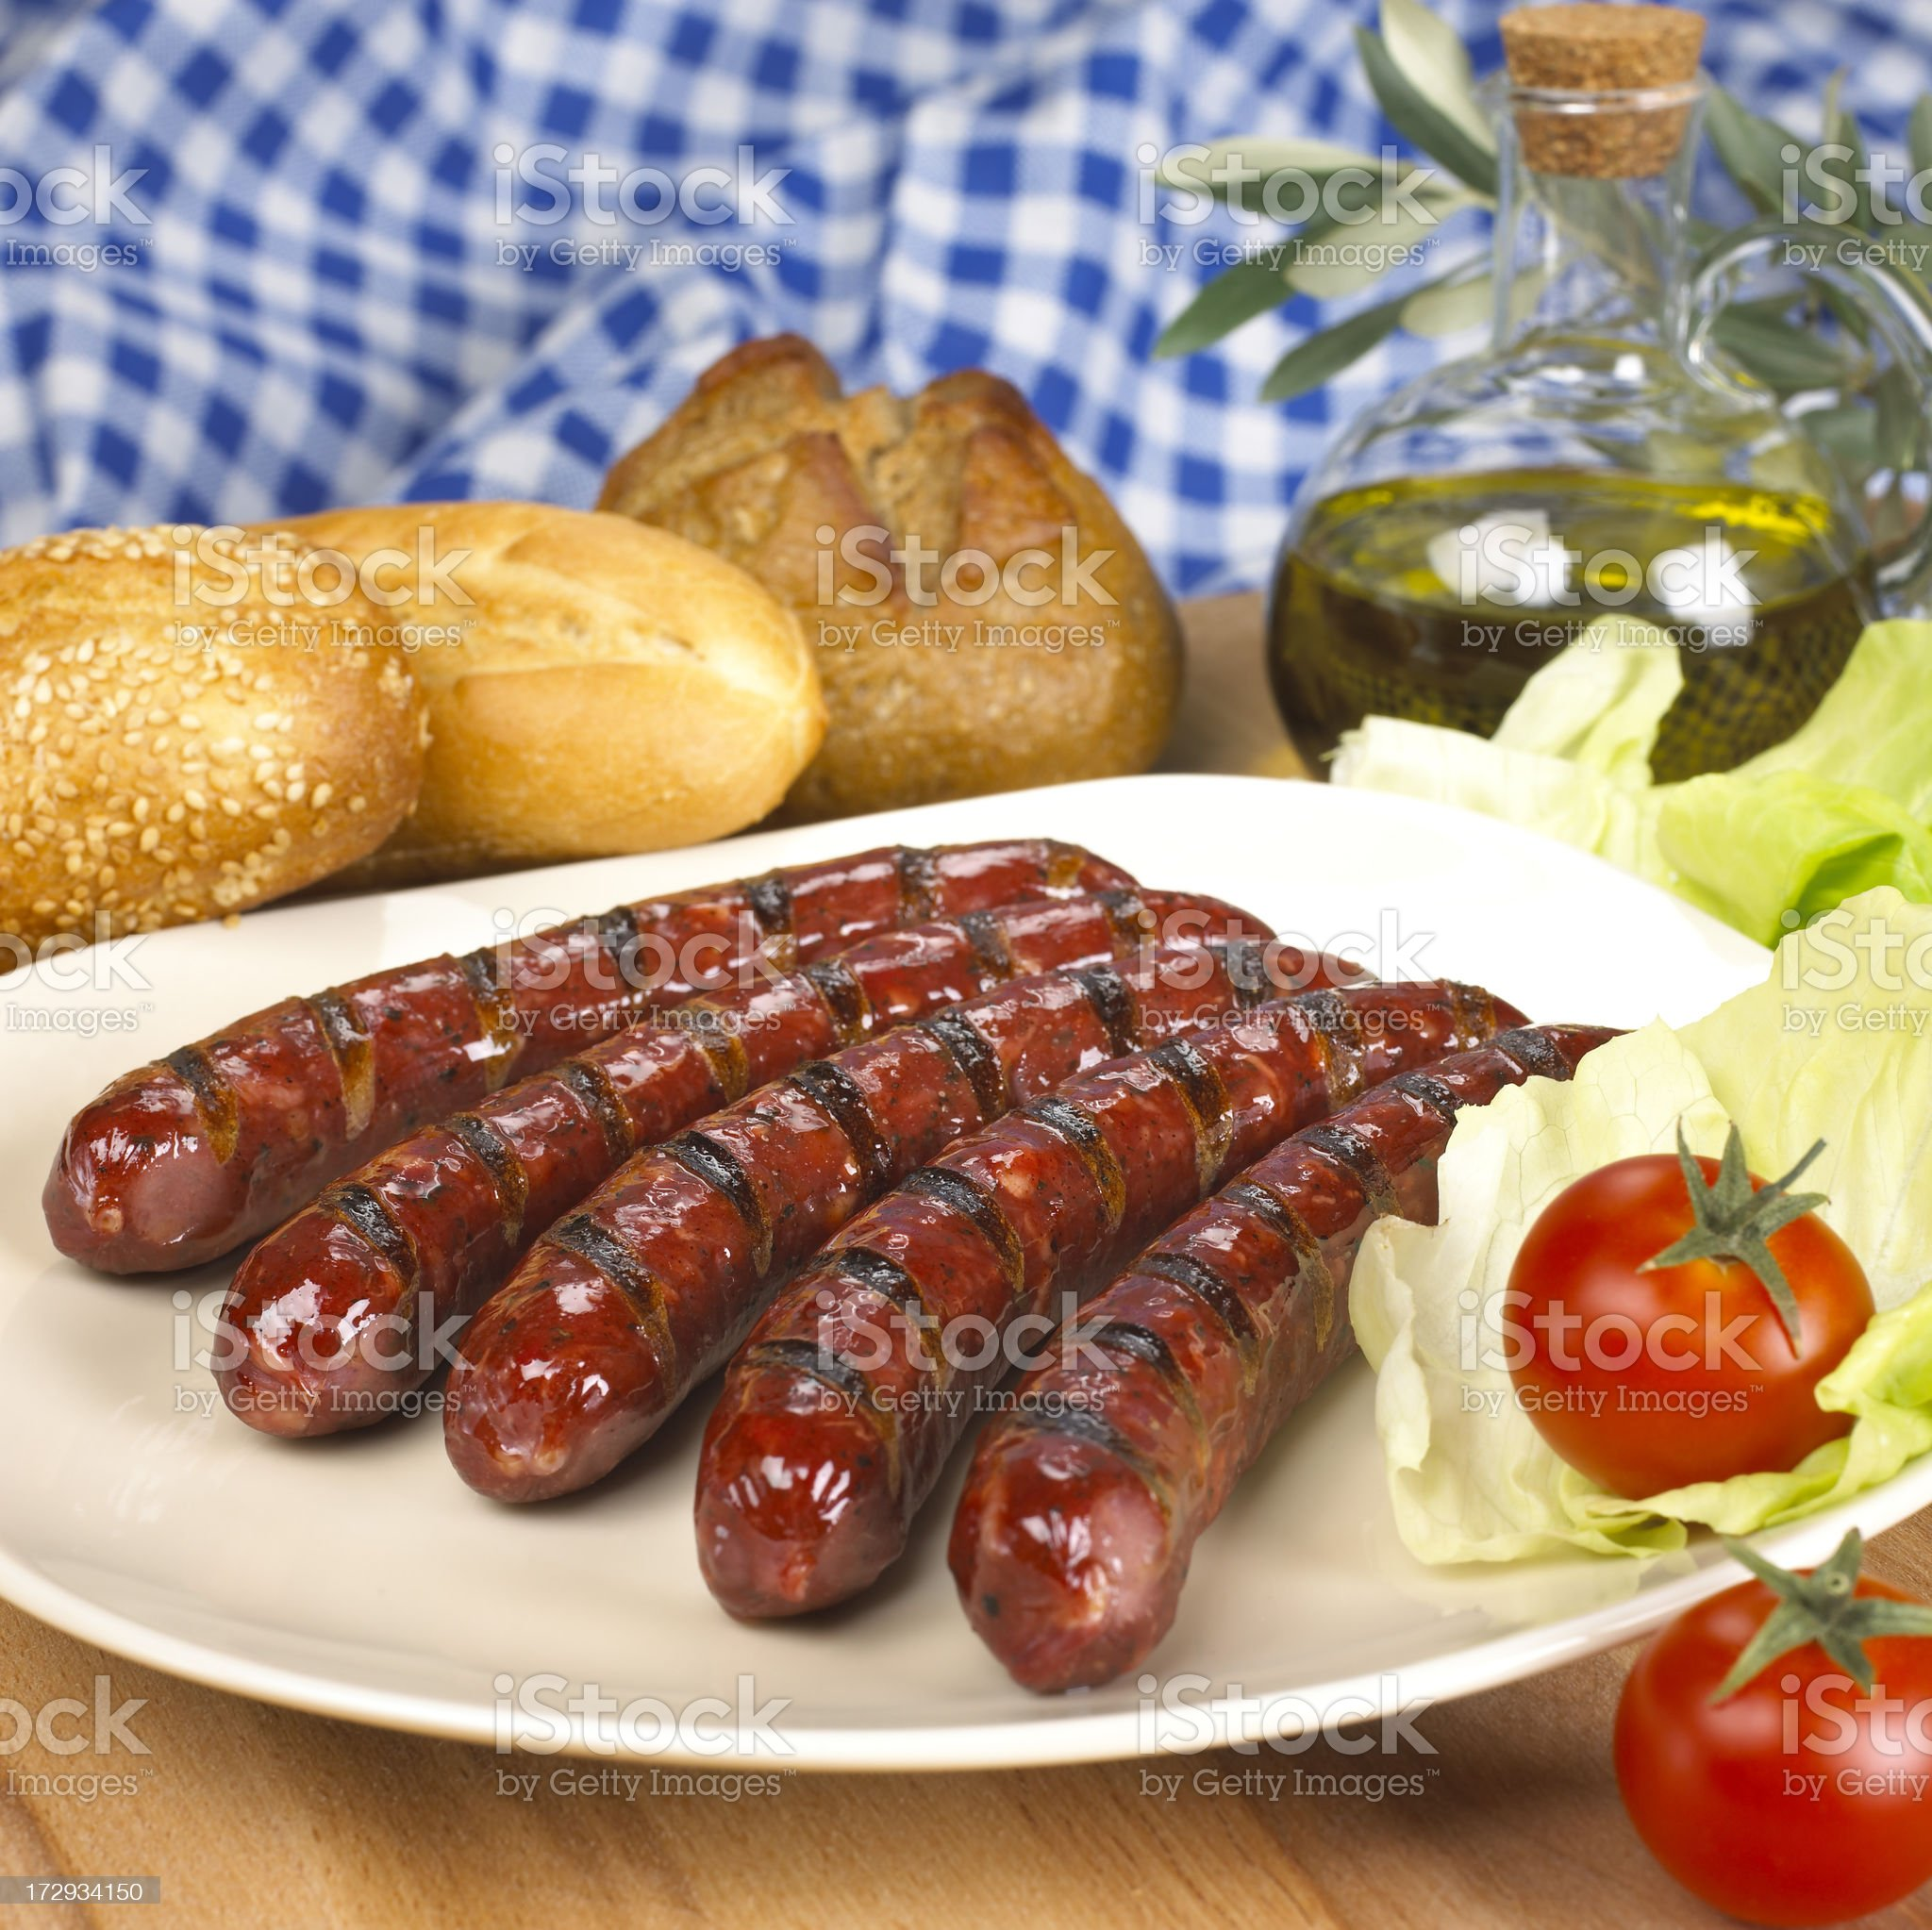 Plate with sausages royalty-free stock photo